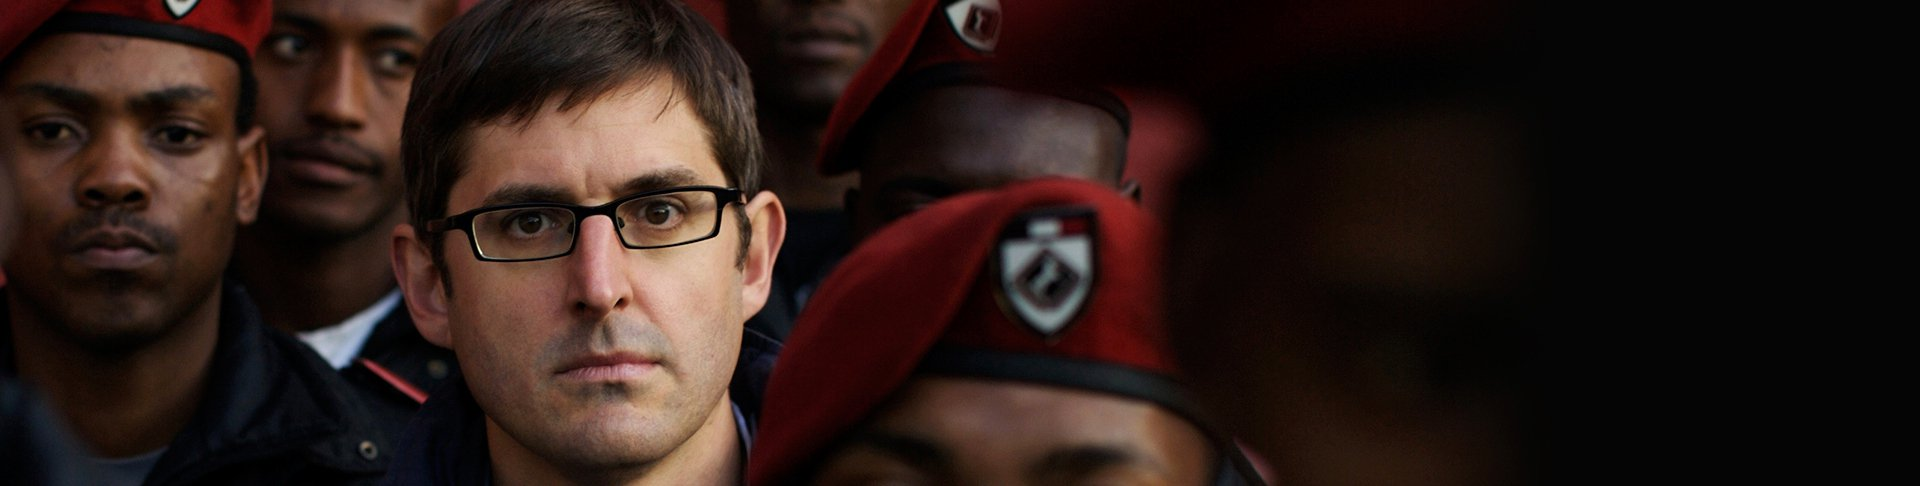 Louis Theroux: Law & Disorder in Johannesburg